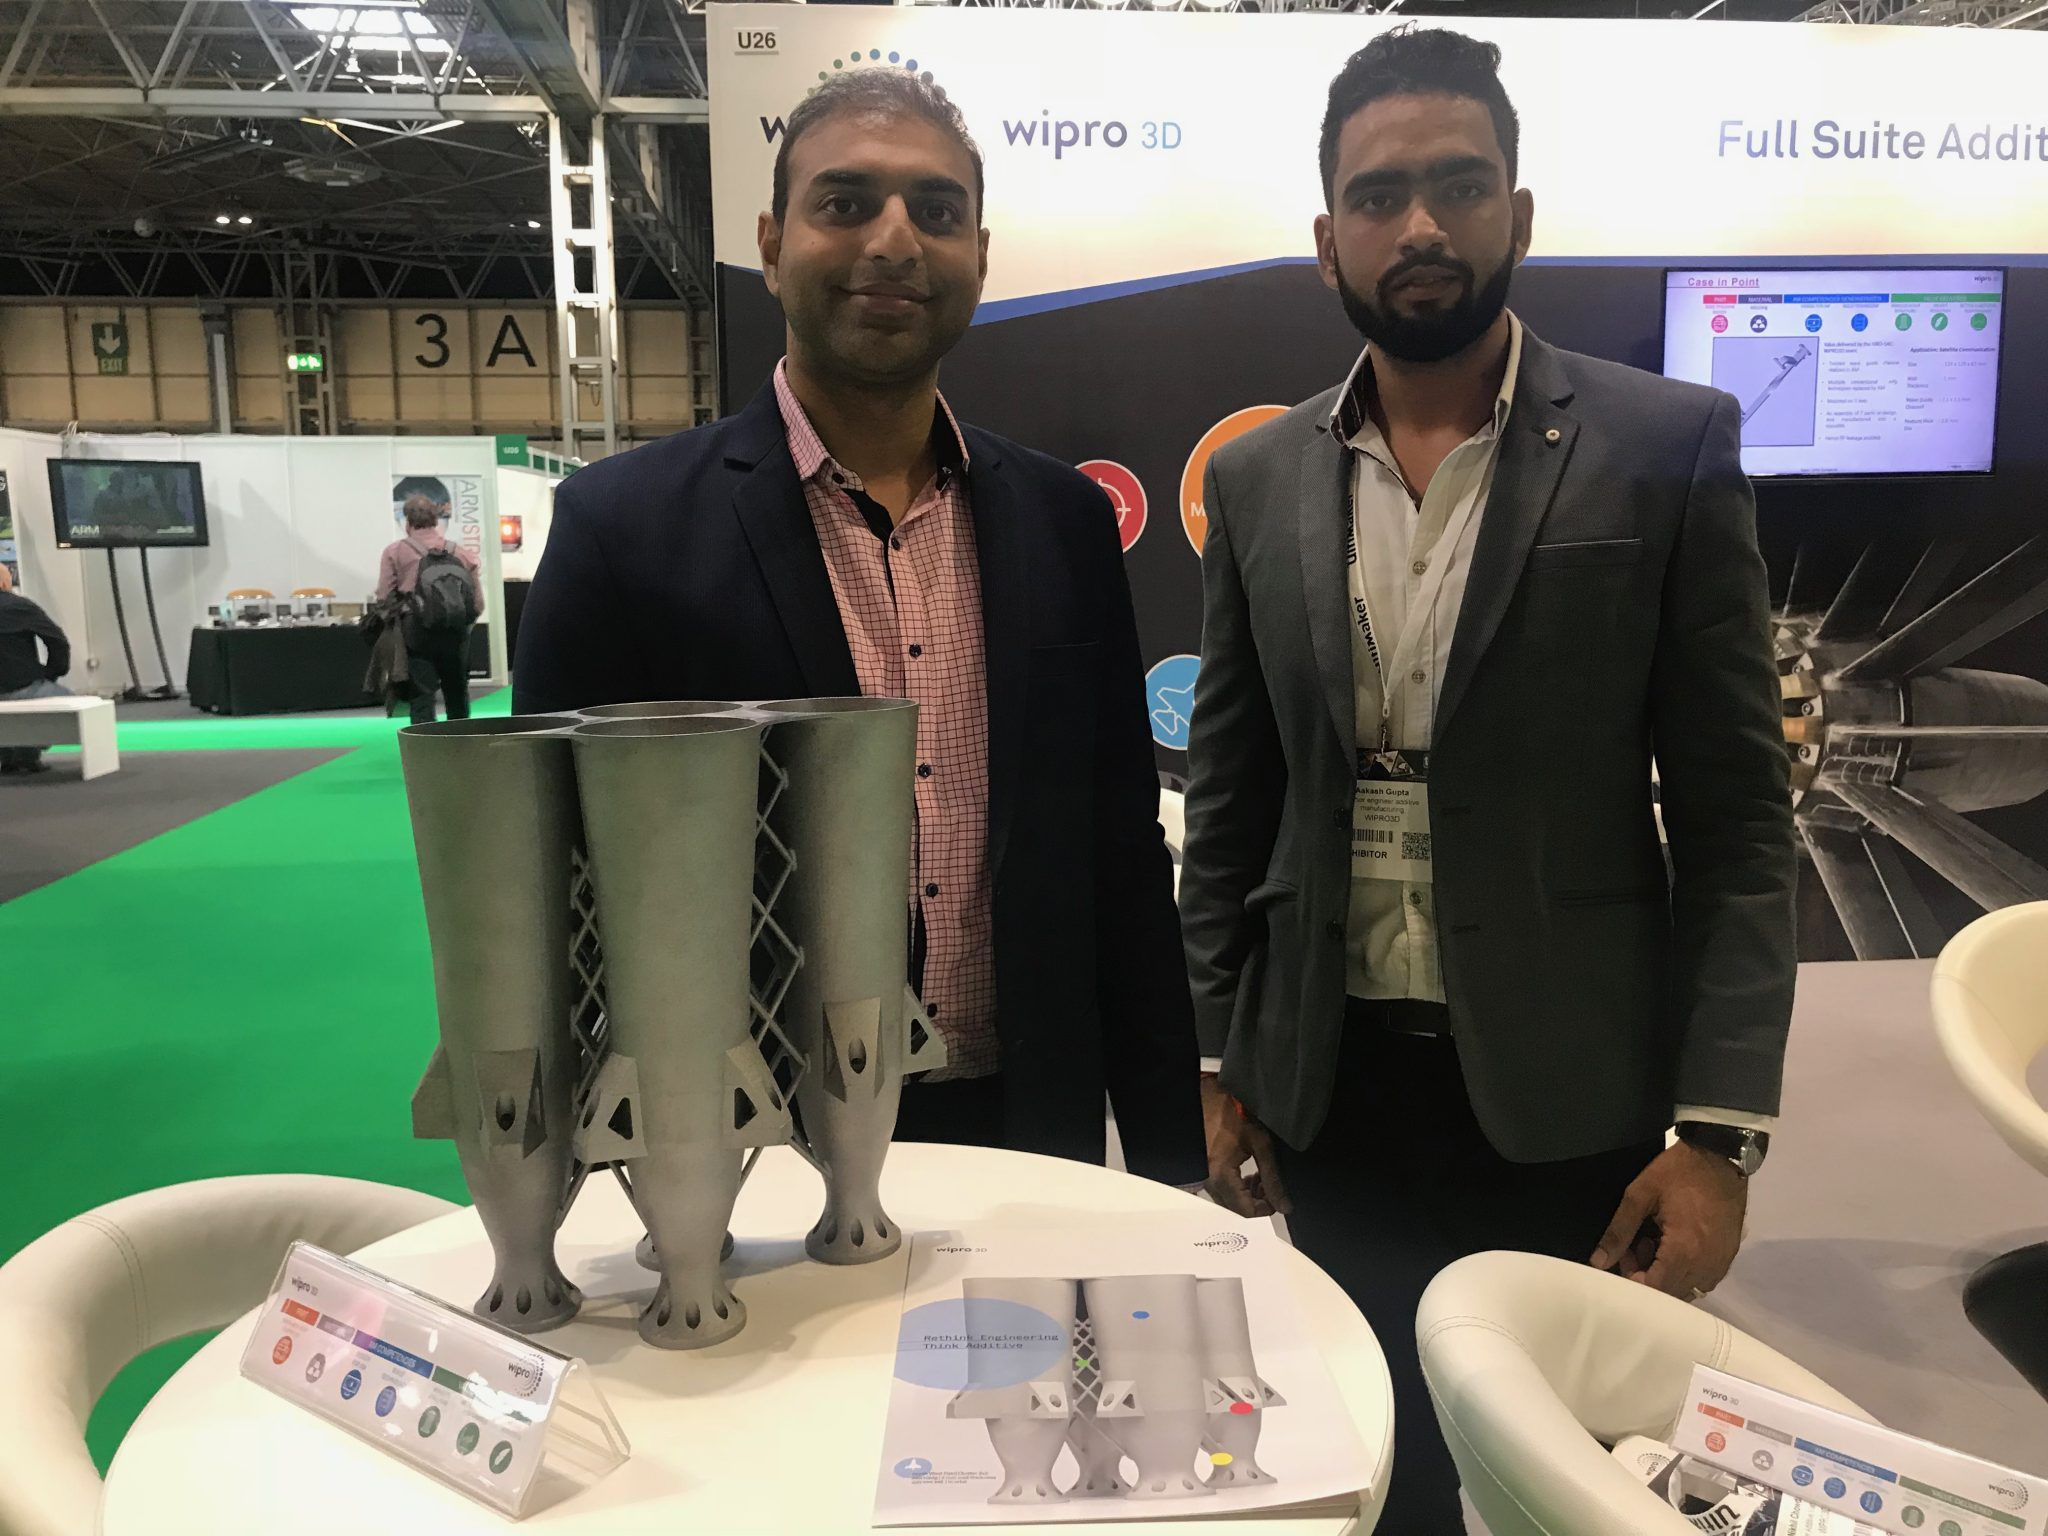 Nikhil Chowdary and Aakash Gupta of Wipro 3D with metal 3D printed feed cluster at TCT 2018 in the UK. Photo by Swamini Khanvilkar.